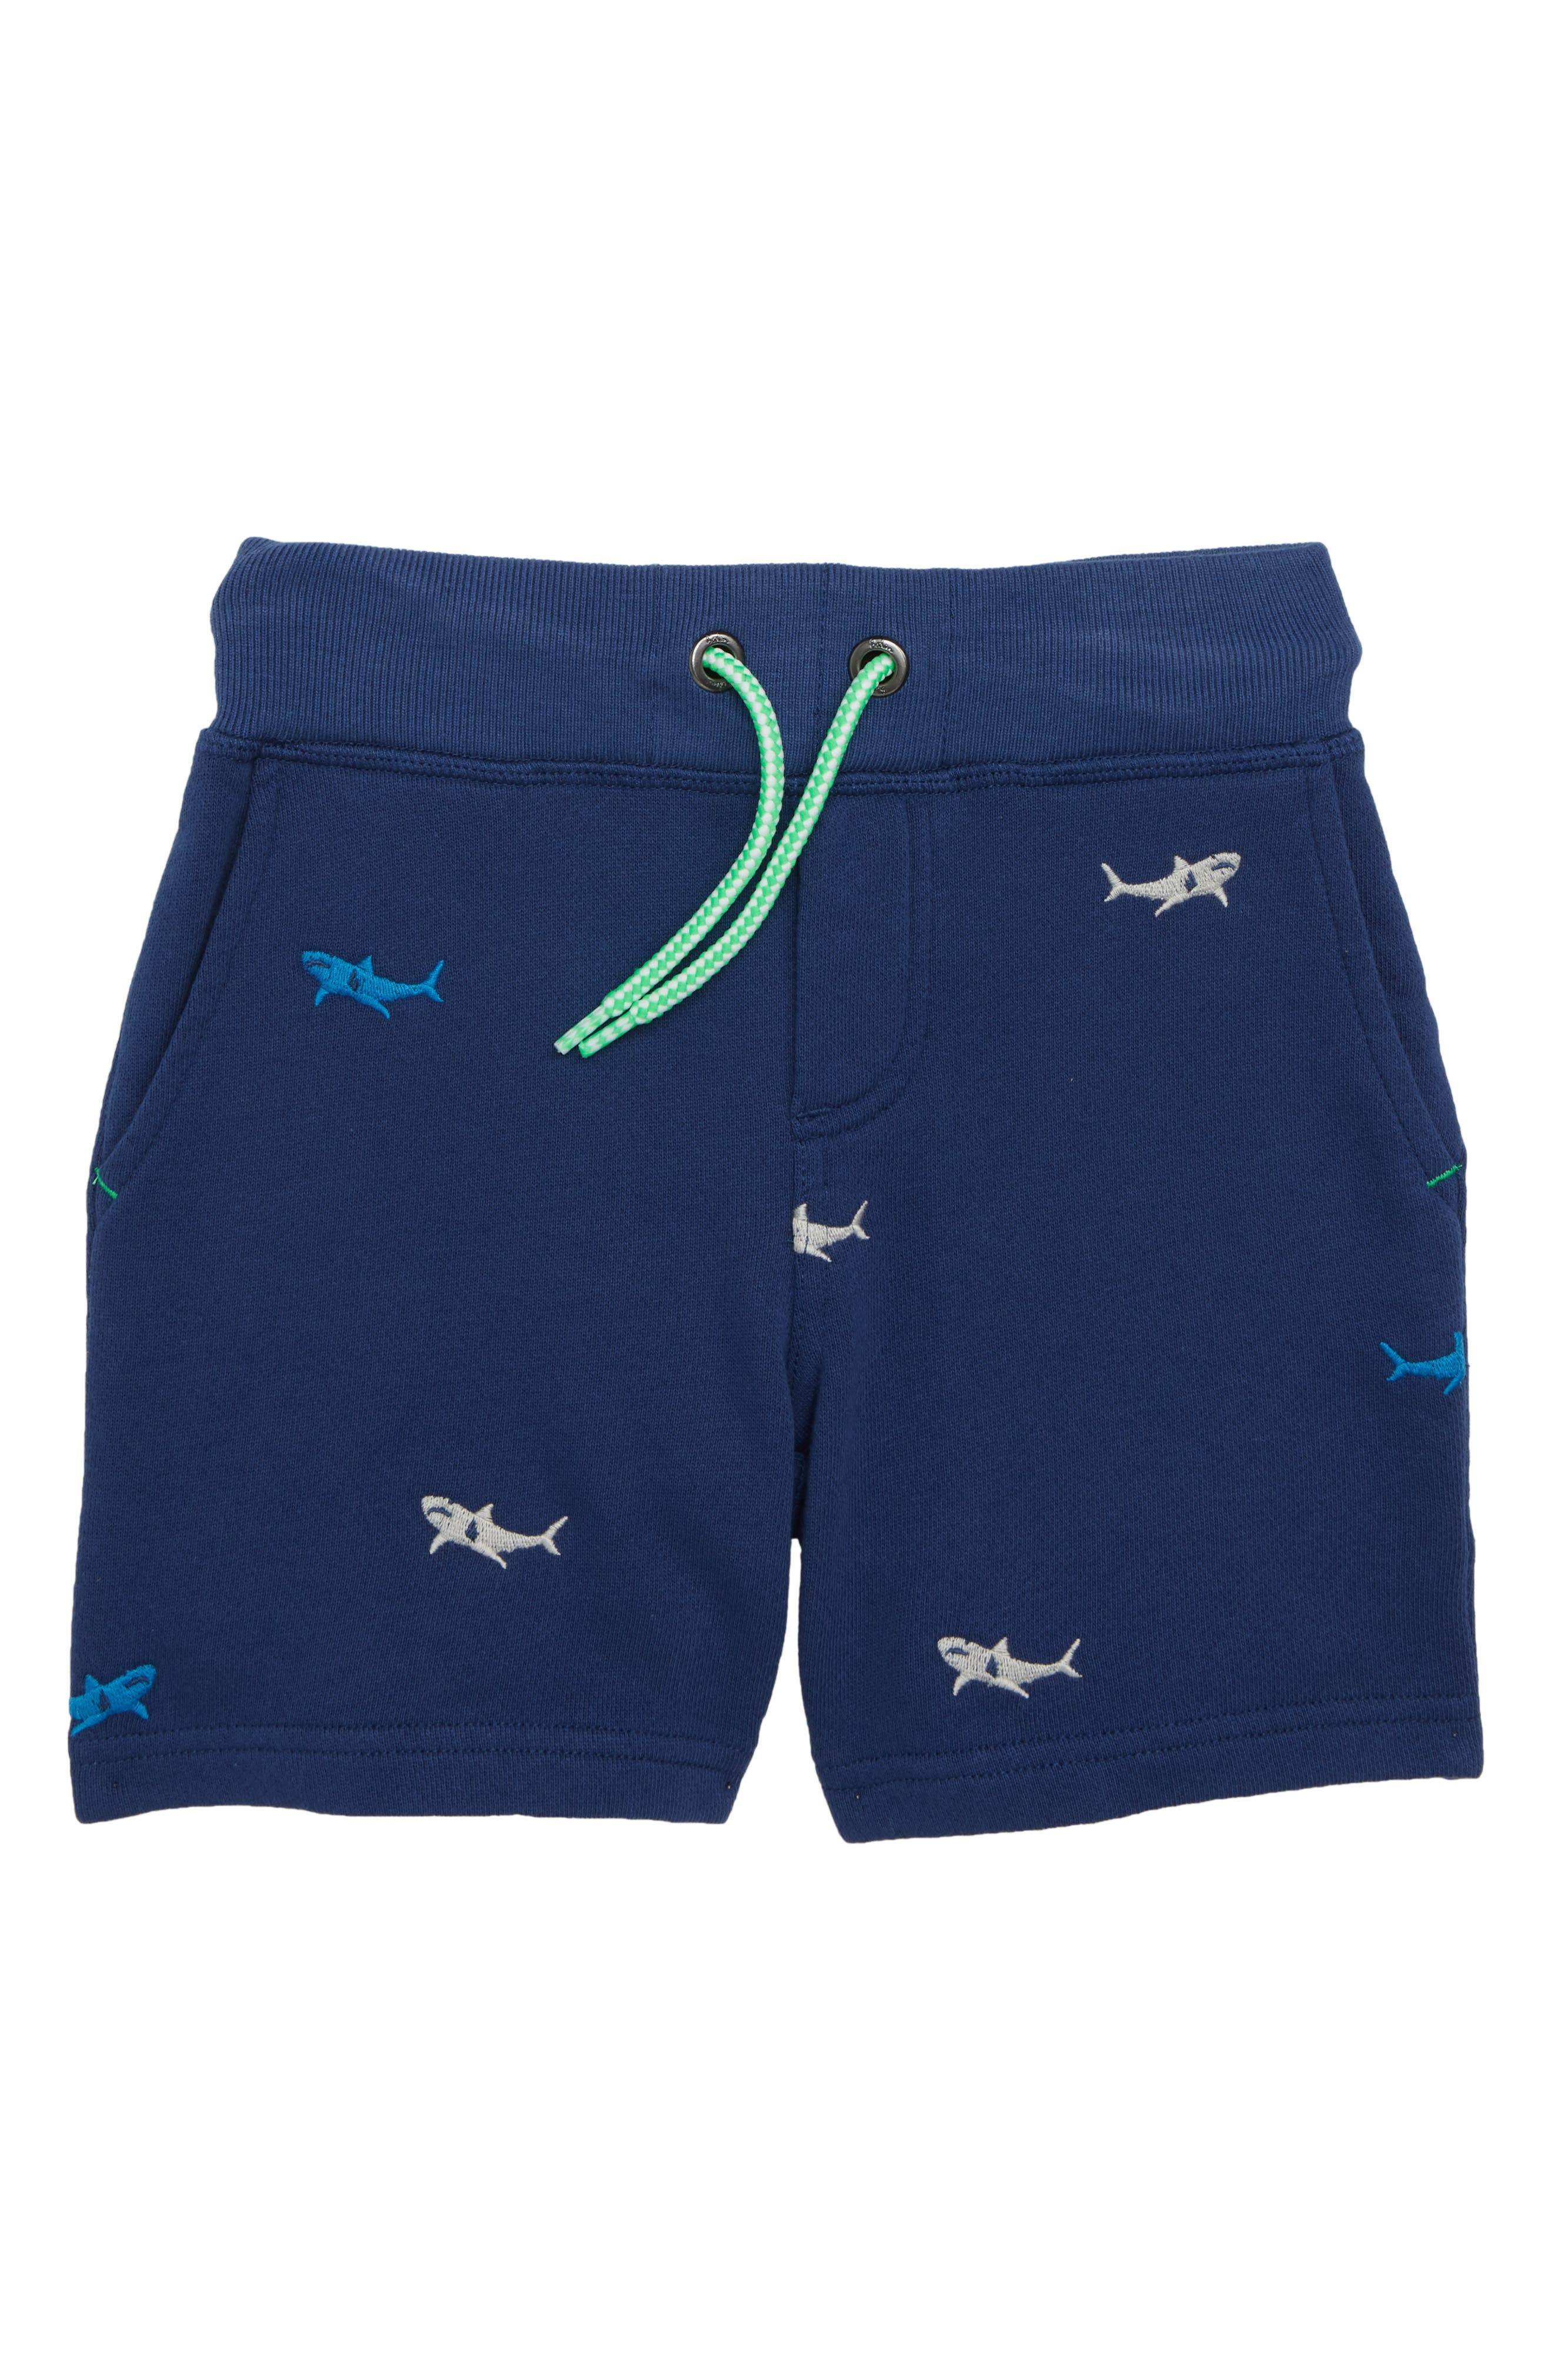 Embroidered Jersey Shorts,                         Main,                         color, 404